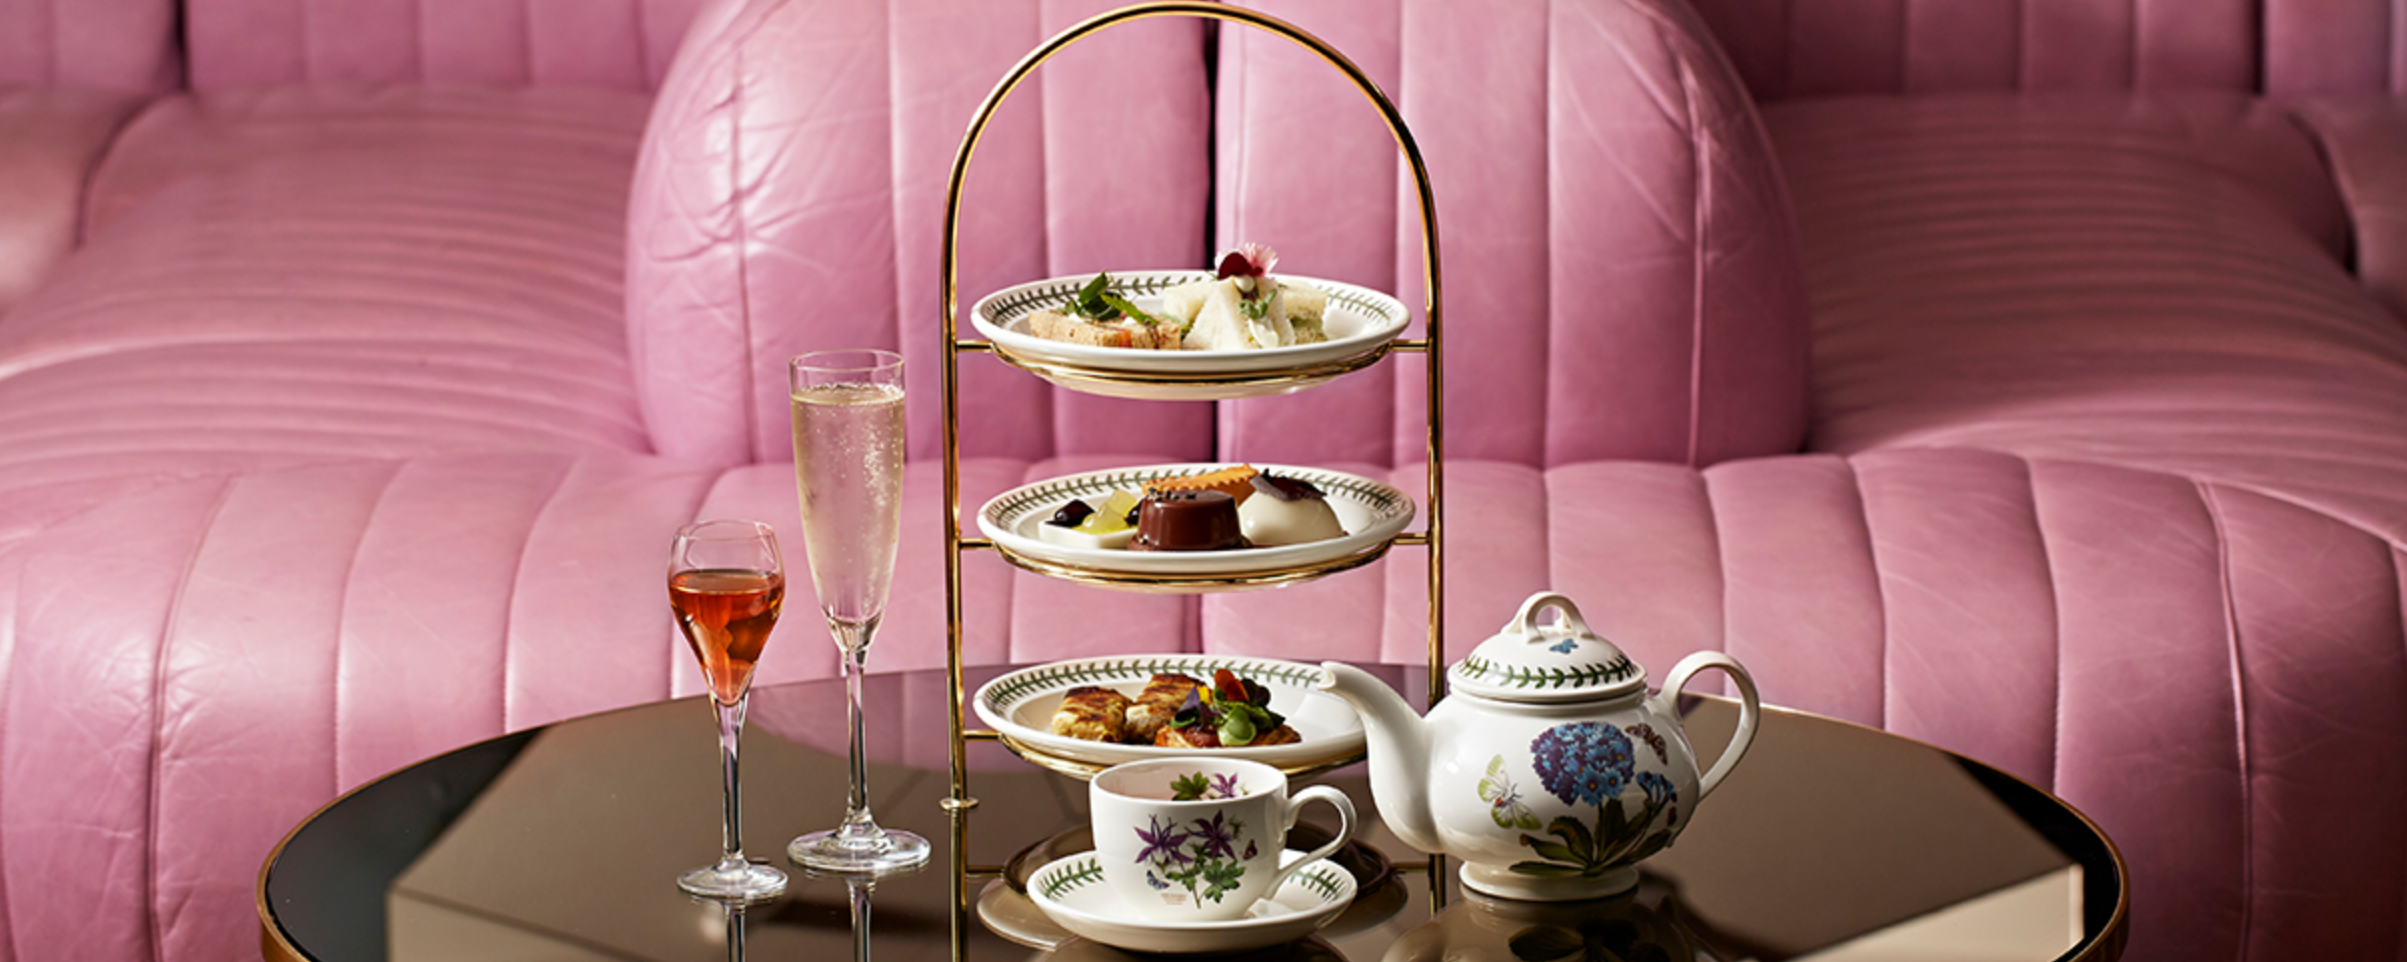 Afternoon tea, photo courtesy of Mondrian London